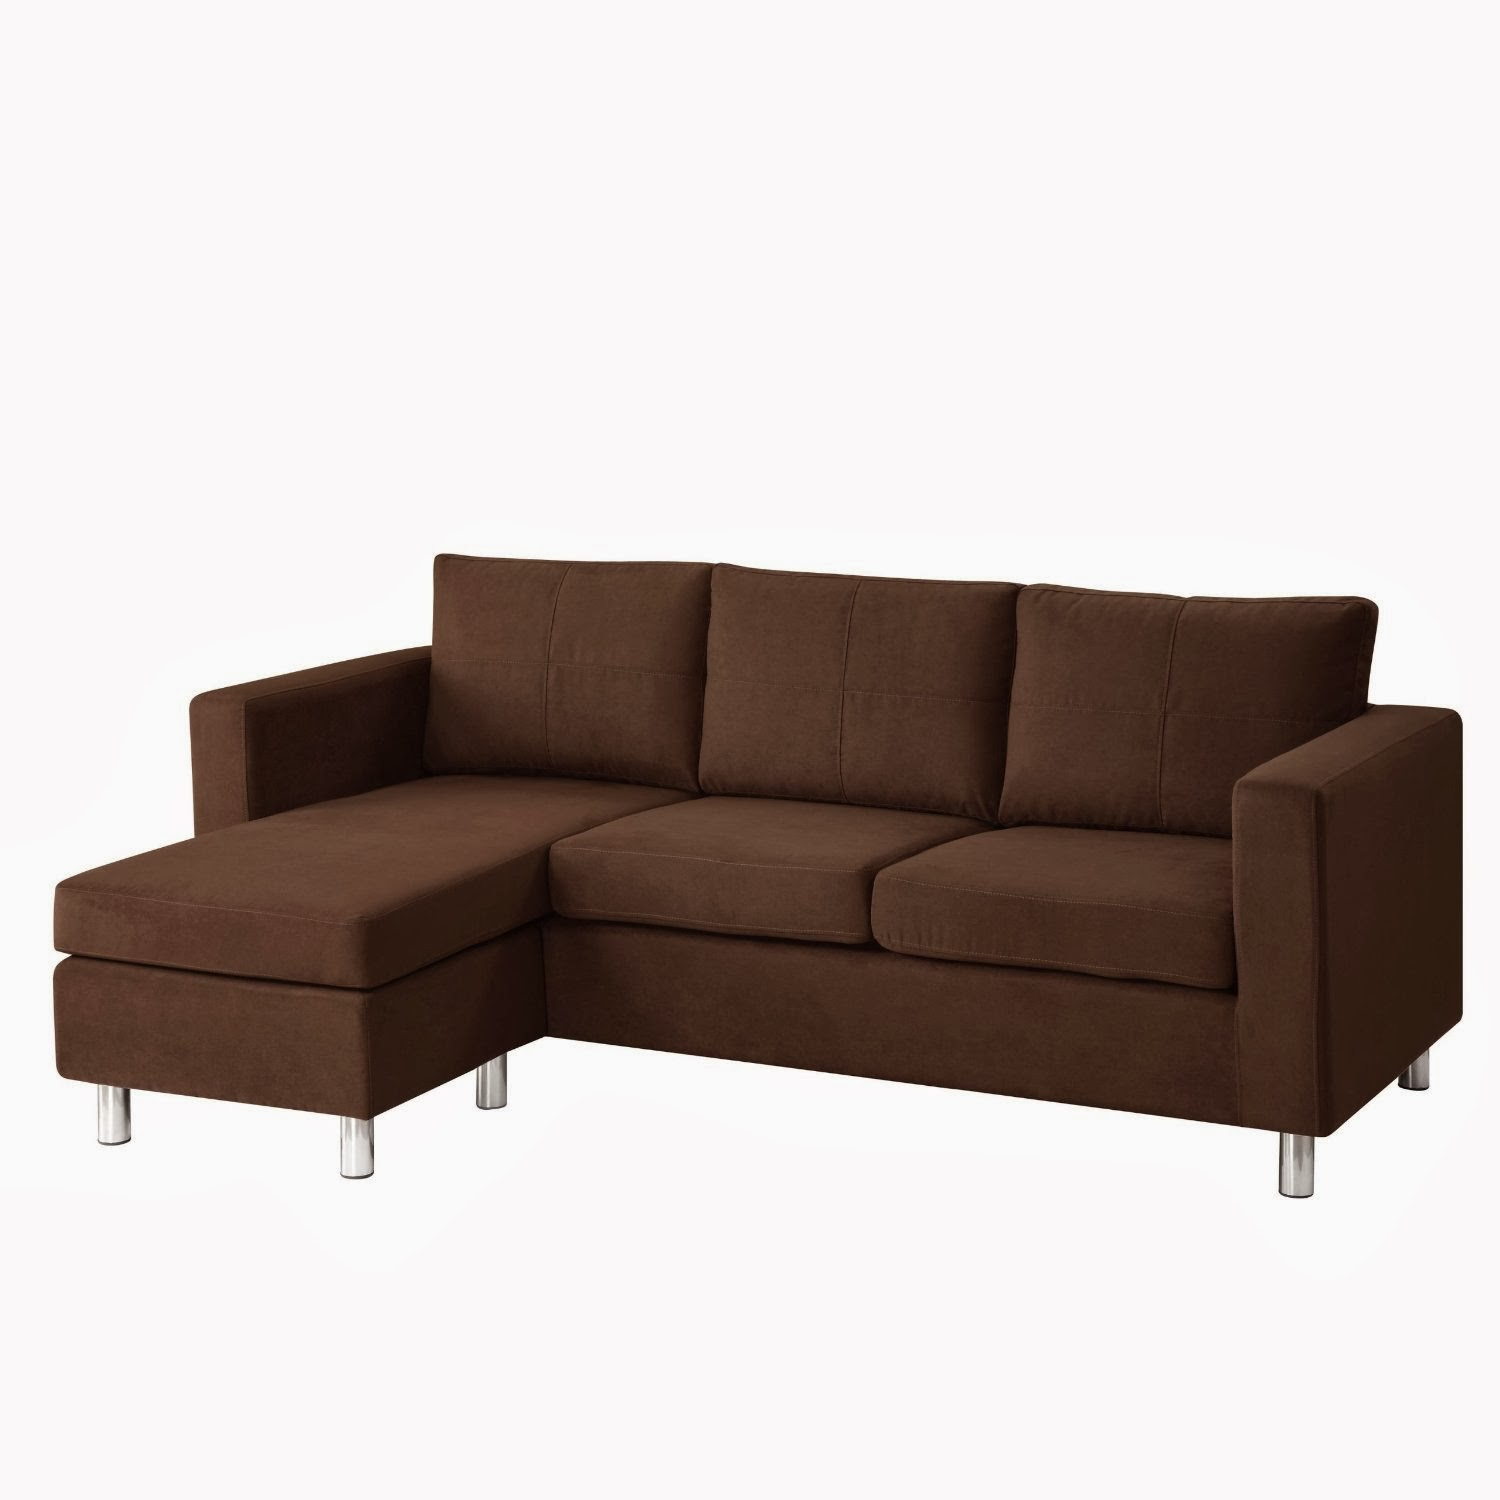 Small Sectional Sofas Reviews: Small Sectional Sofa With ...